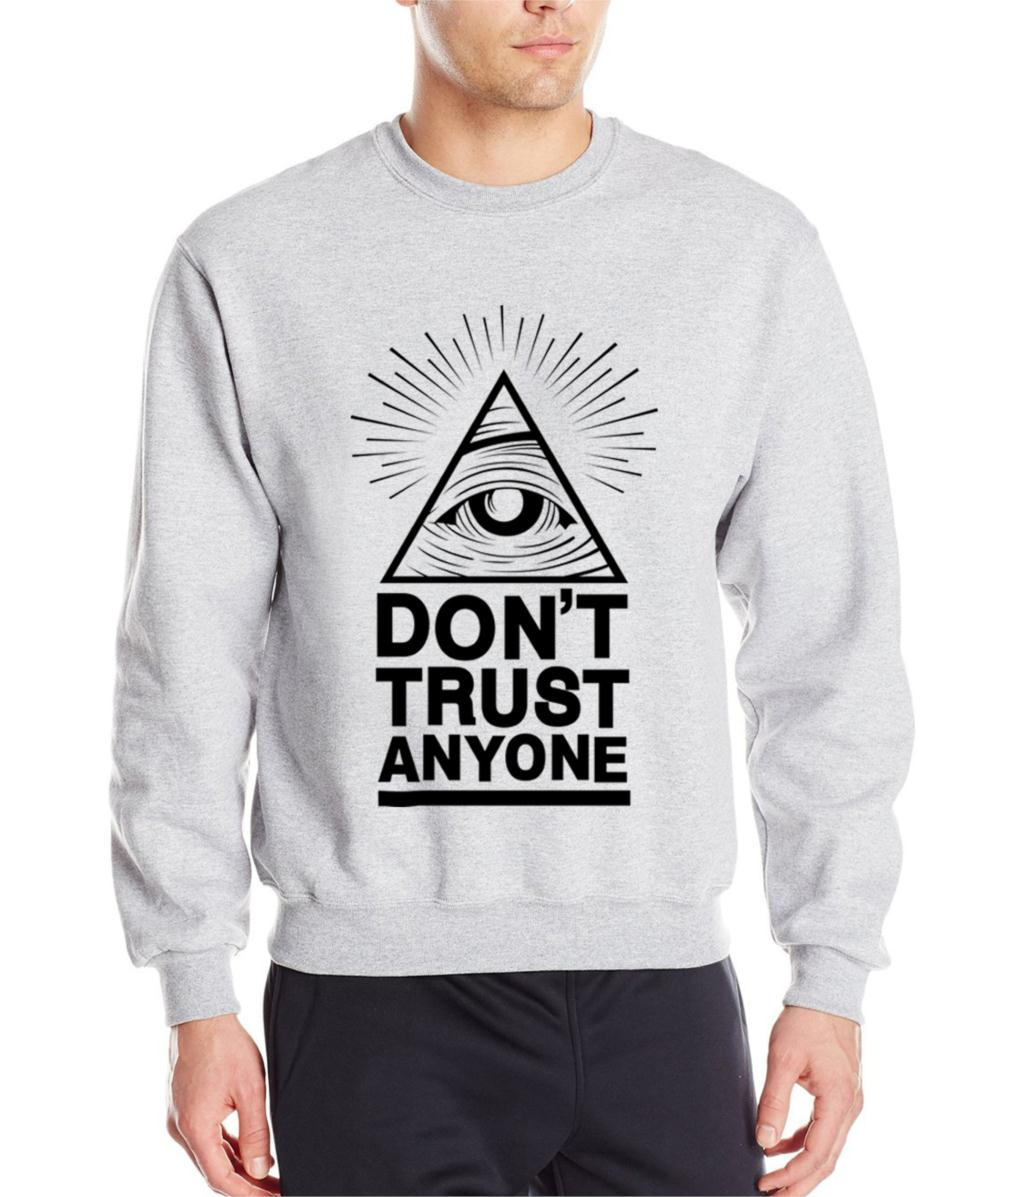 New 2019 Fashion Don't Trust Anyone Autumn Winter Tracksuit Men Hoodies Hip Hop Sportwear Sweatshirts Male Harajuku Kpop Hoodies